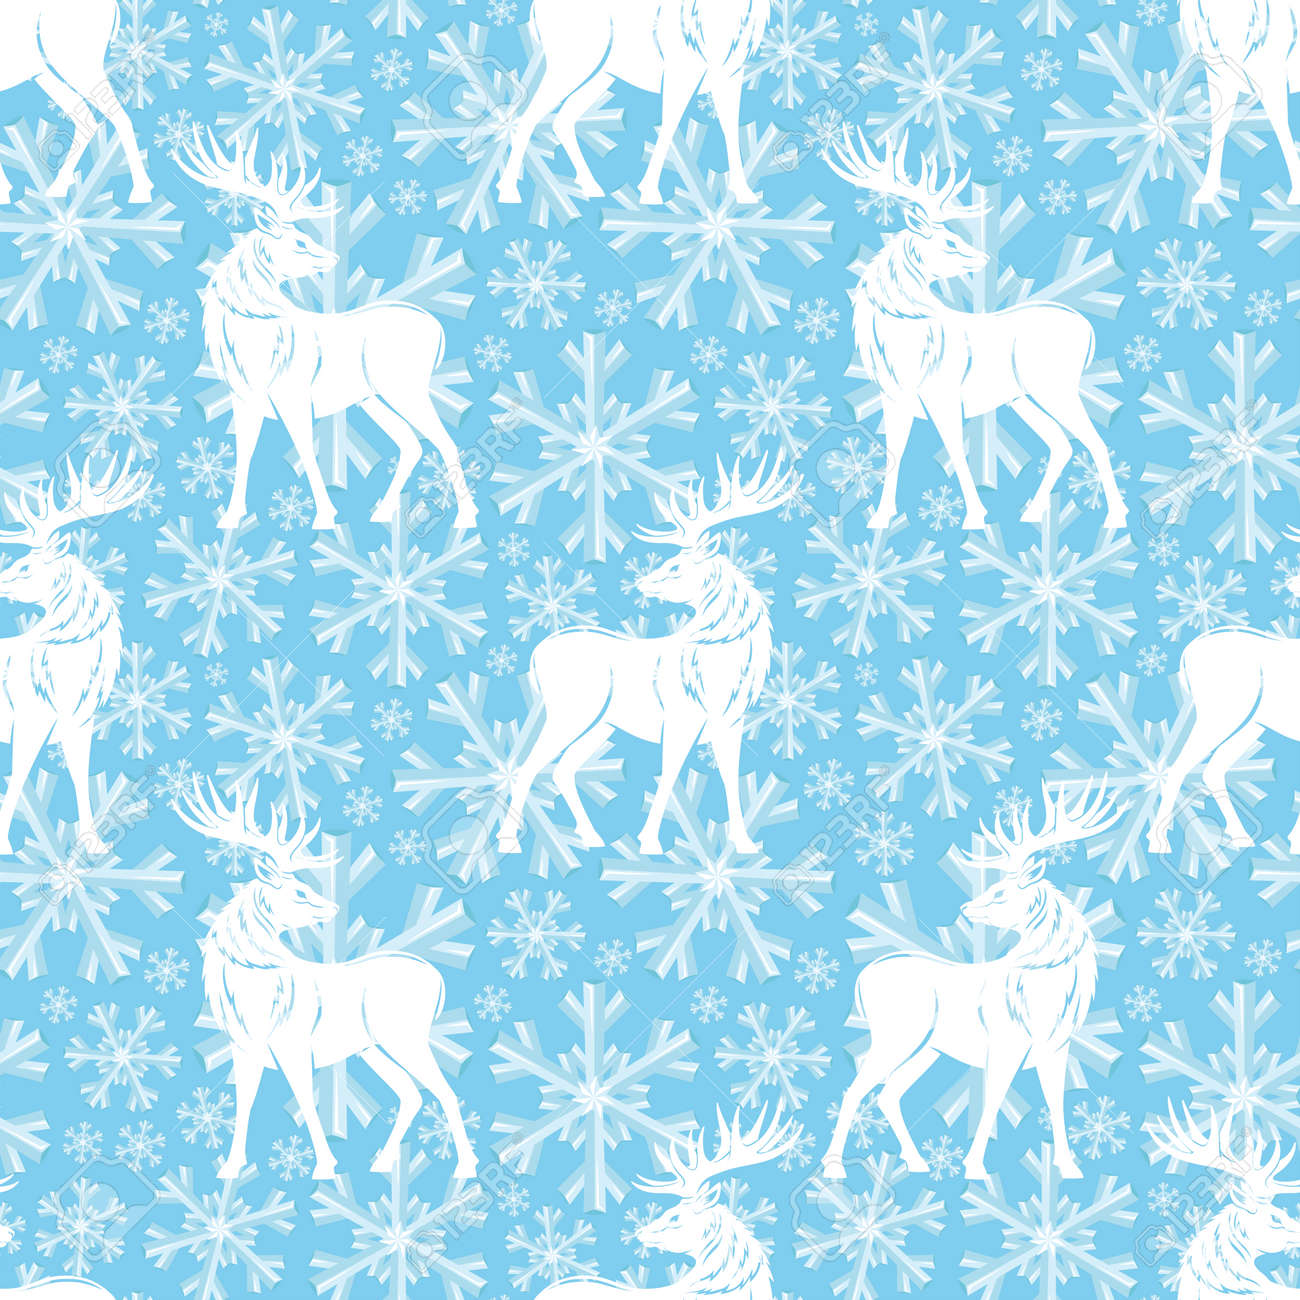 Pattern with deer and snowflakes on a blue background. - 168969179